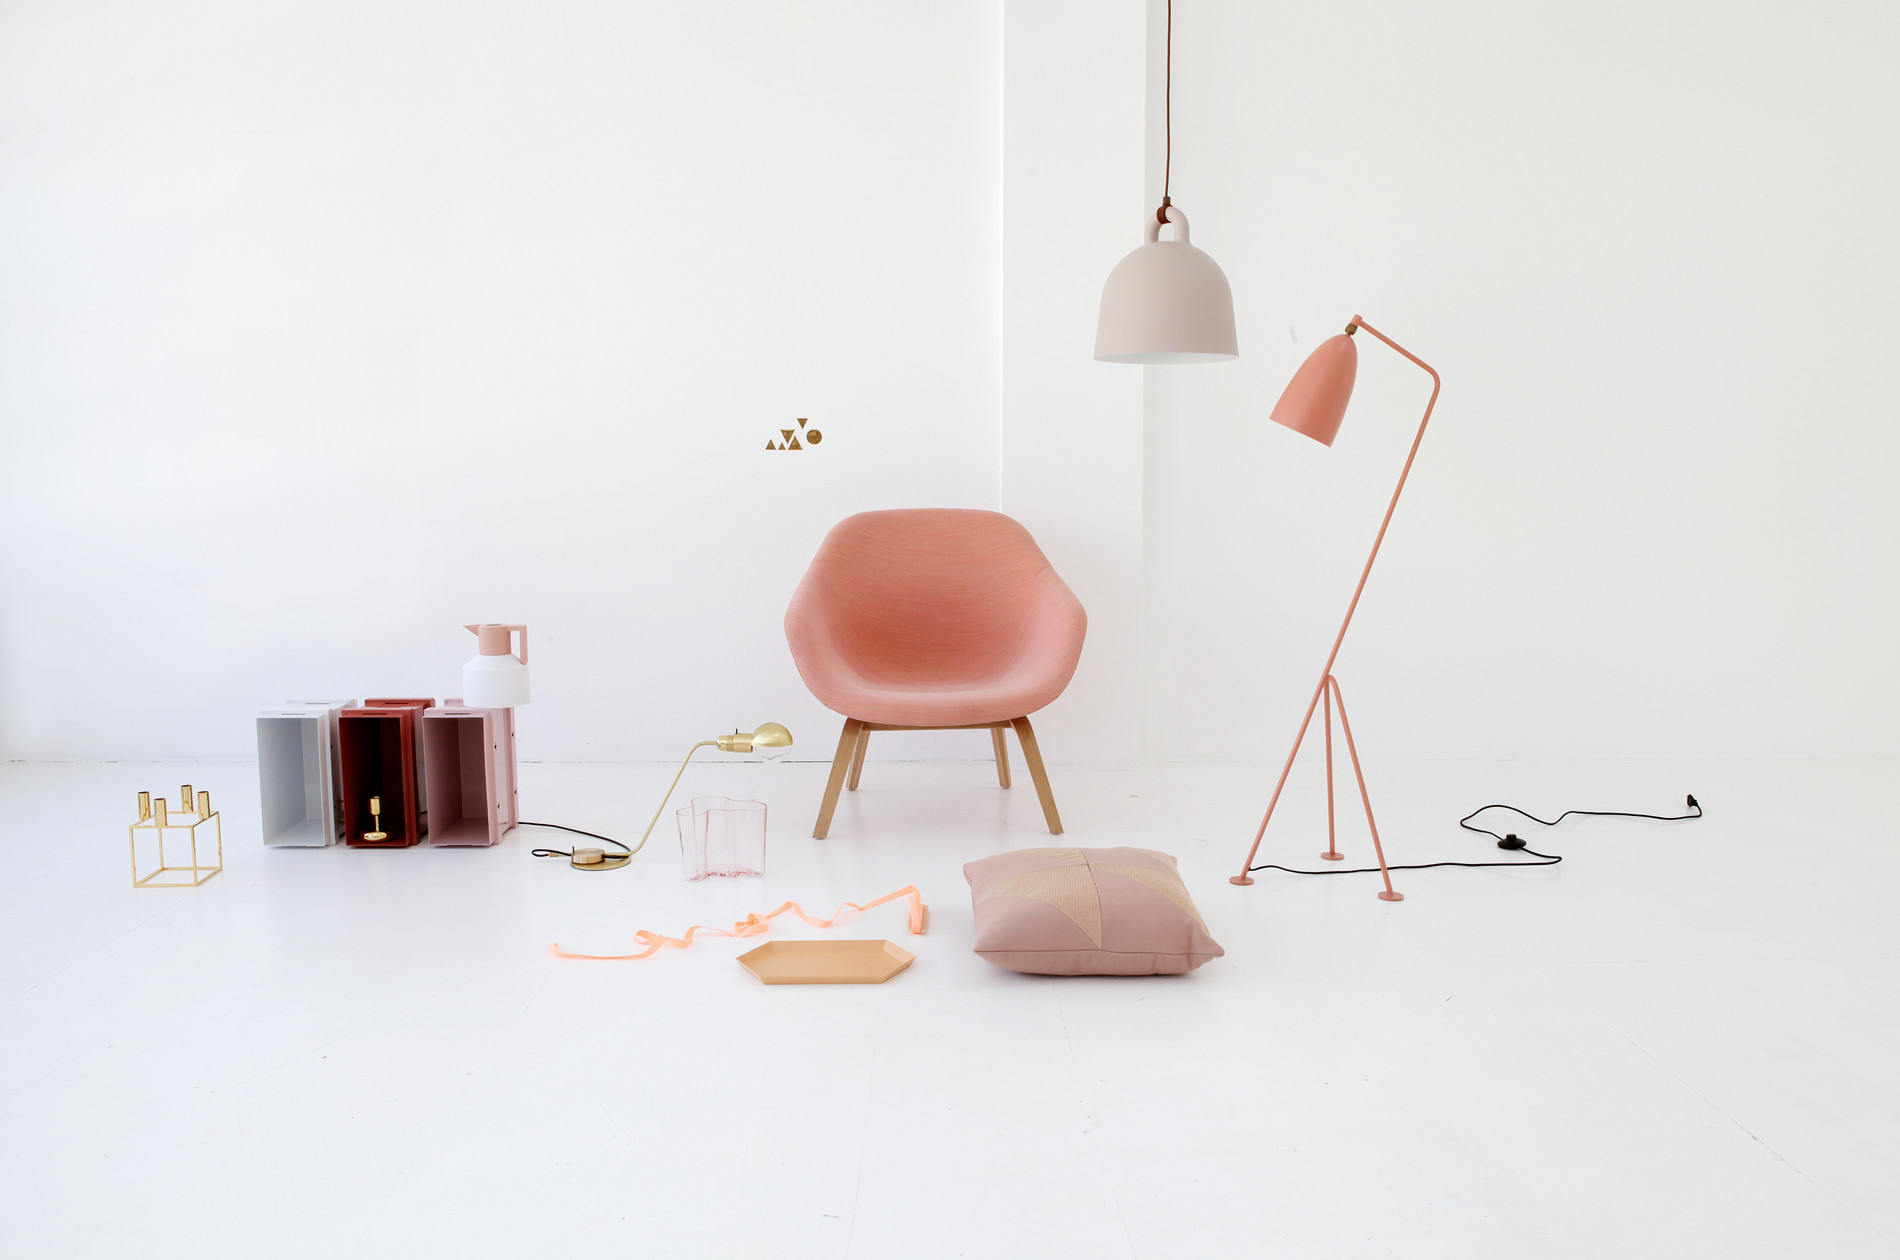 Unsere liebsten interieur online shops cookionista for Interieur online